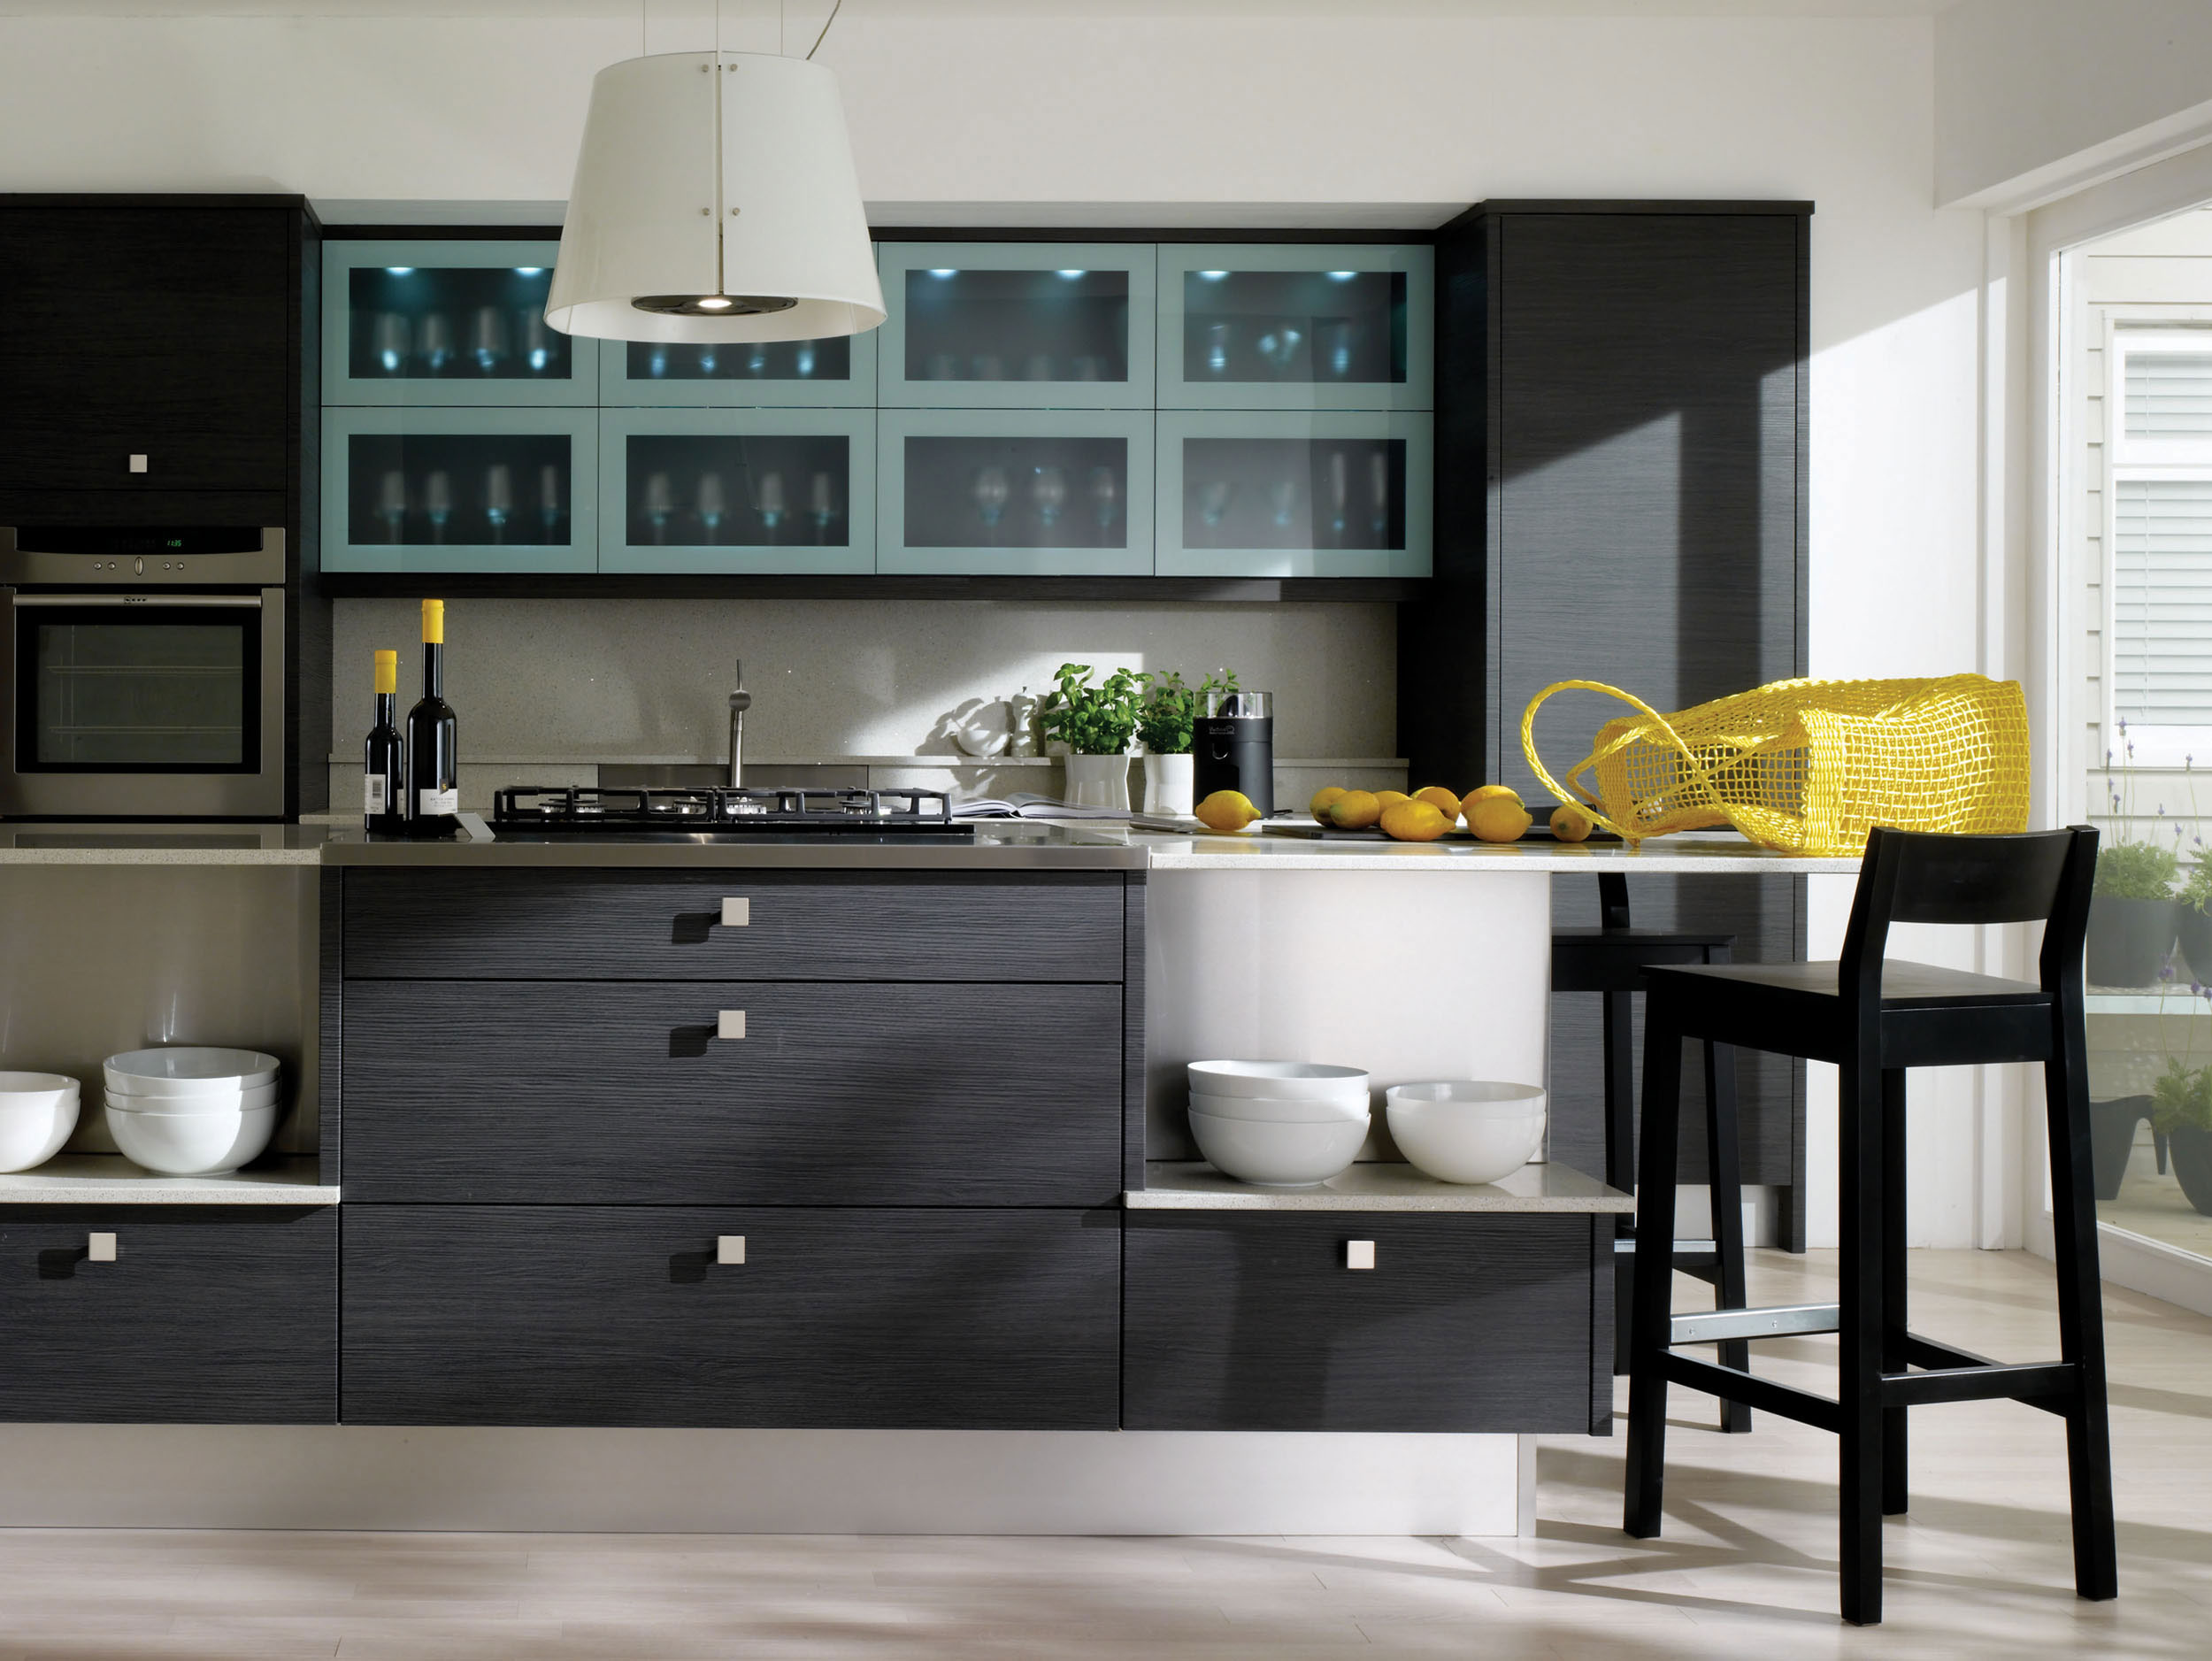 Fenton graphite from eaton kitchen designs wolverhampton for Unit kitchen designs